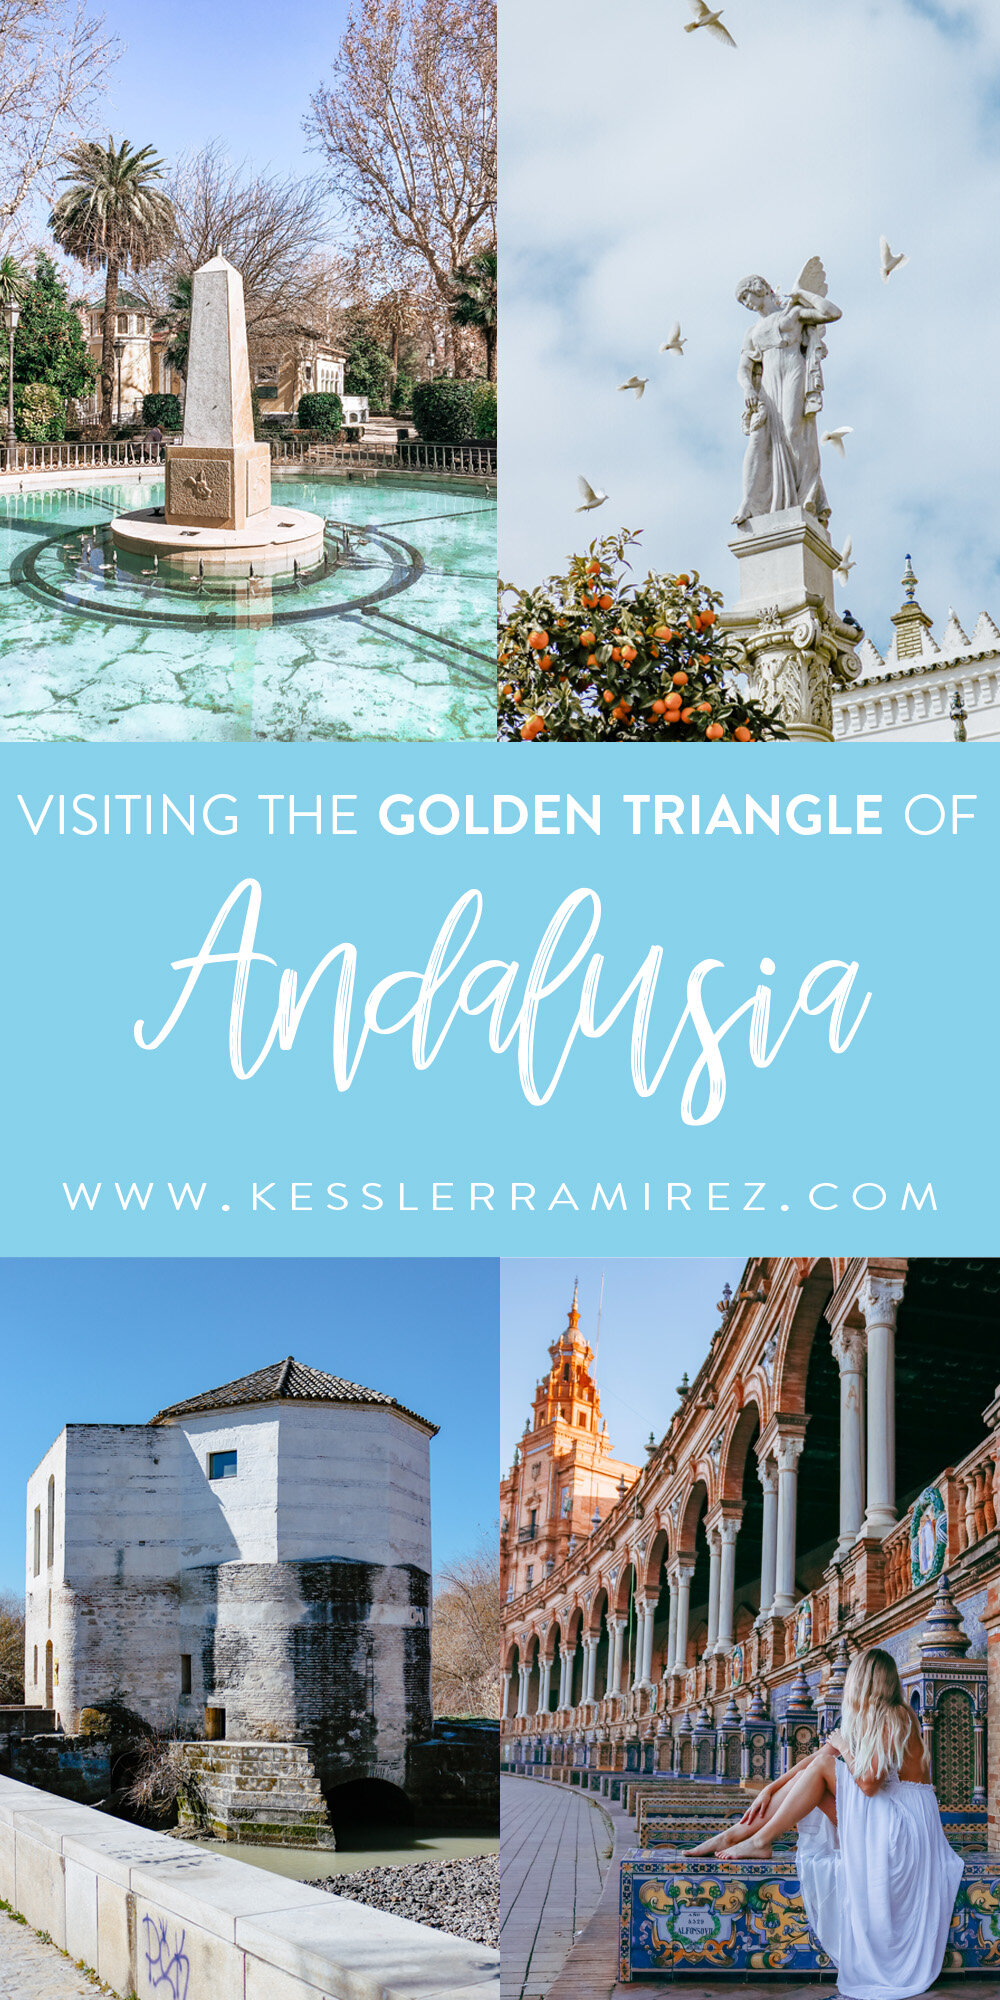 Visiting the Golden Triangle of Andalusia